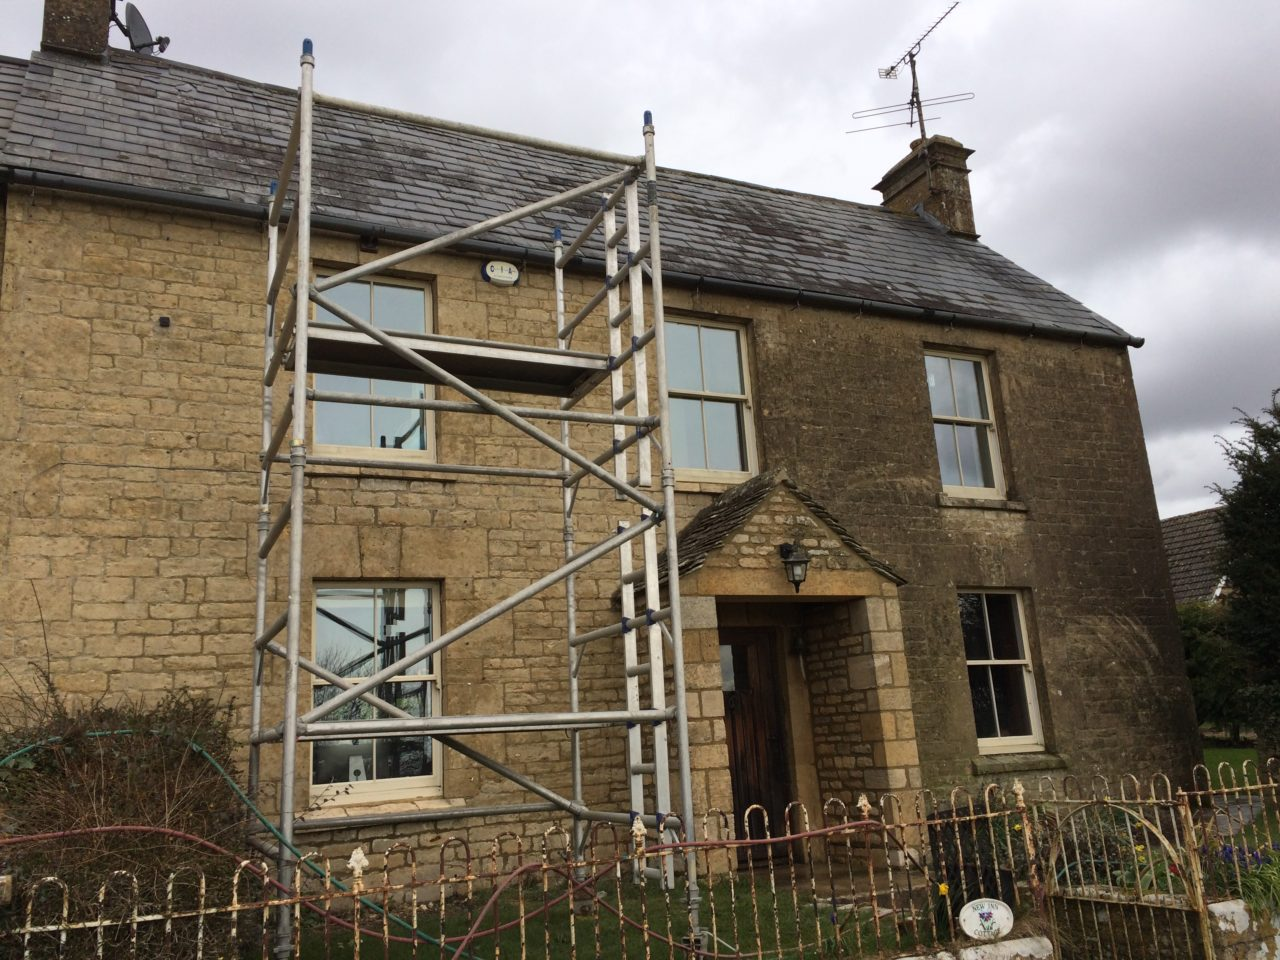 Cotswold Stone Cleaning – Winstone House, Cirencester Before Cleaning